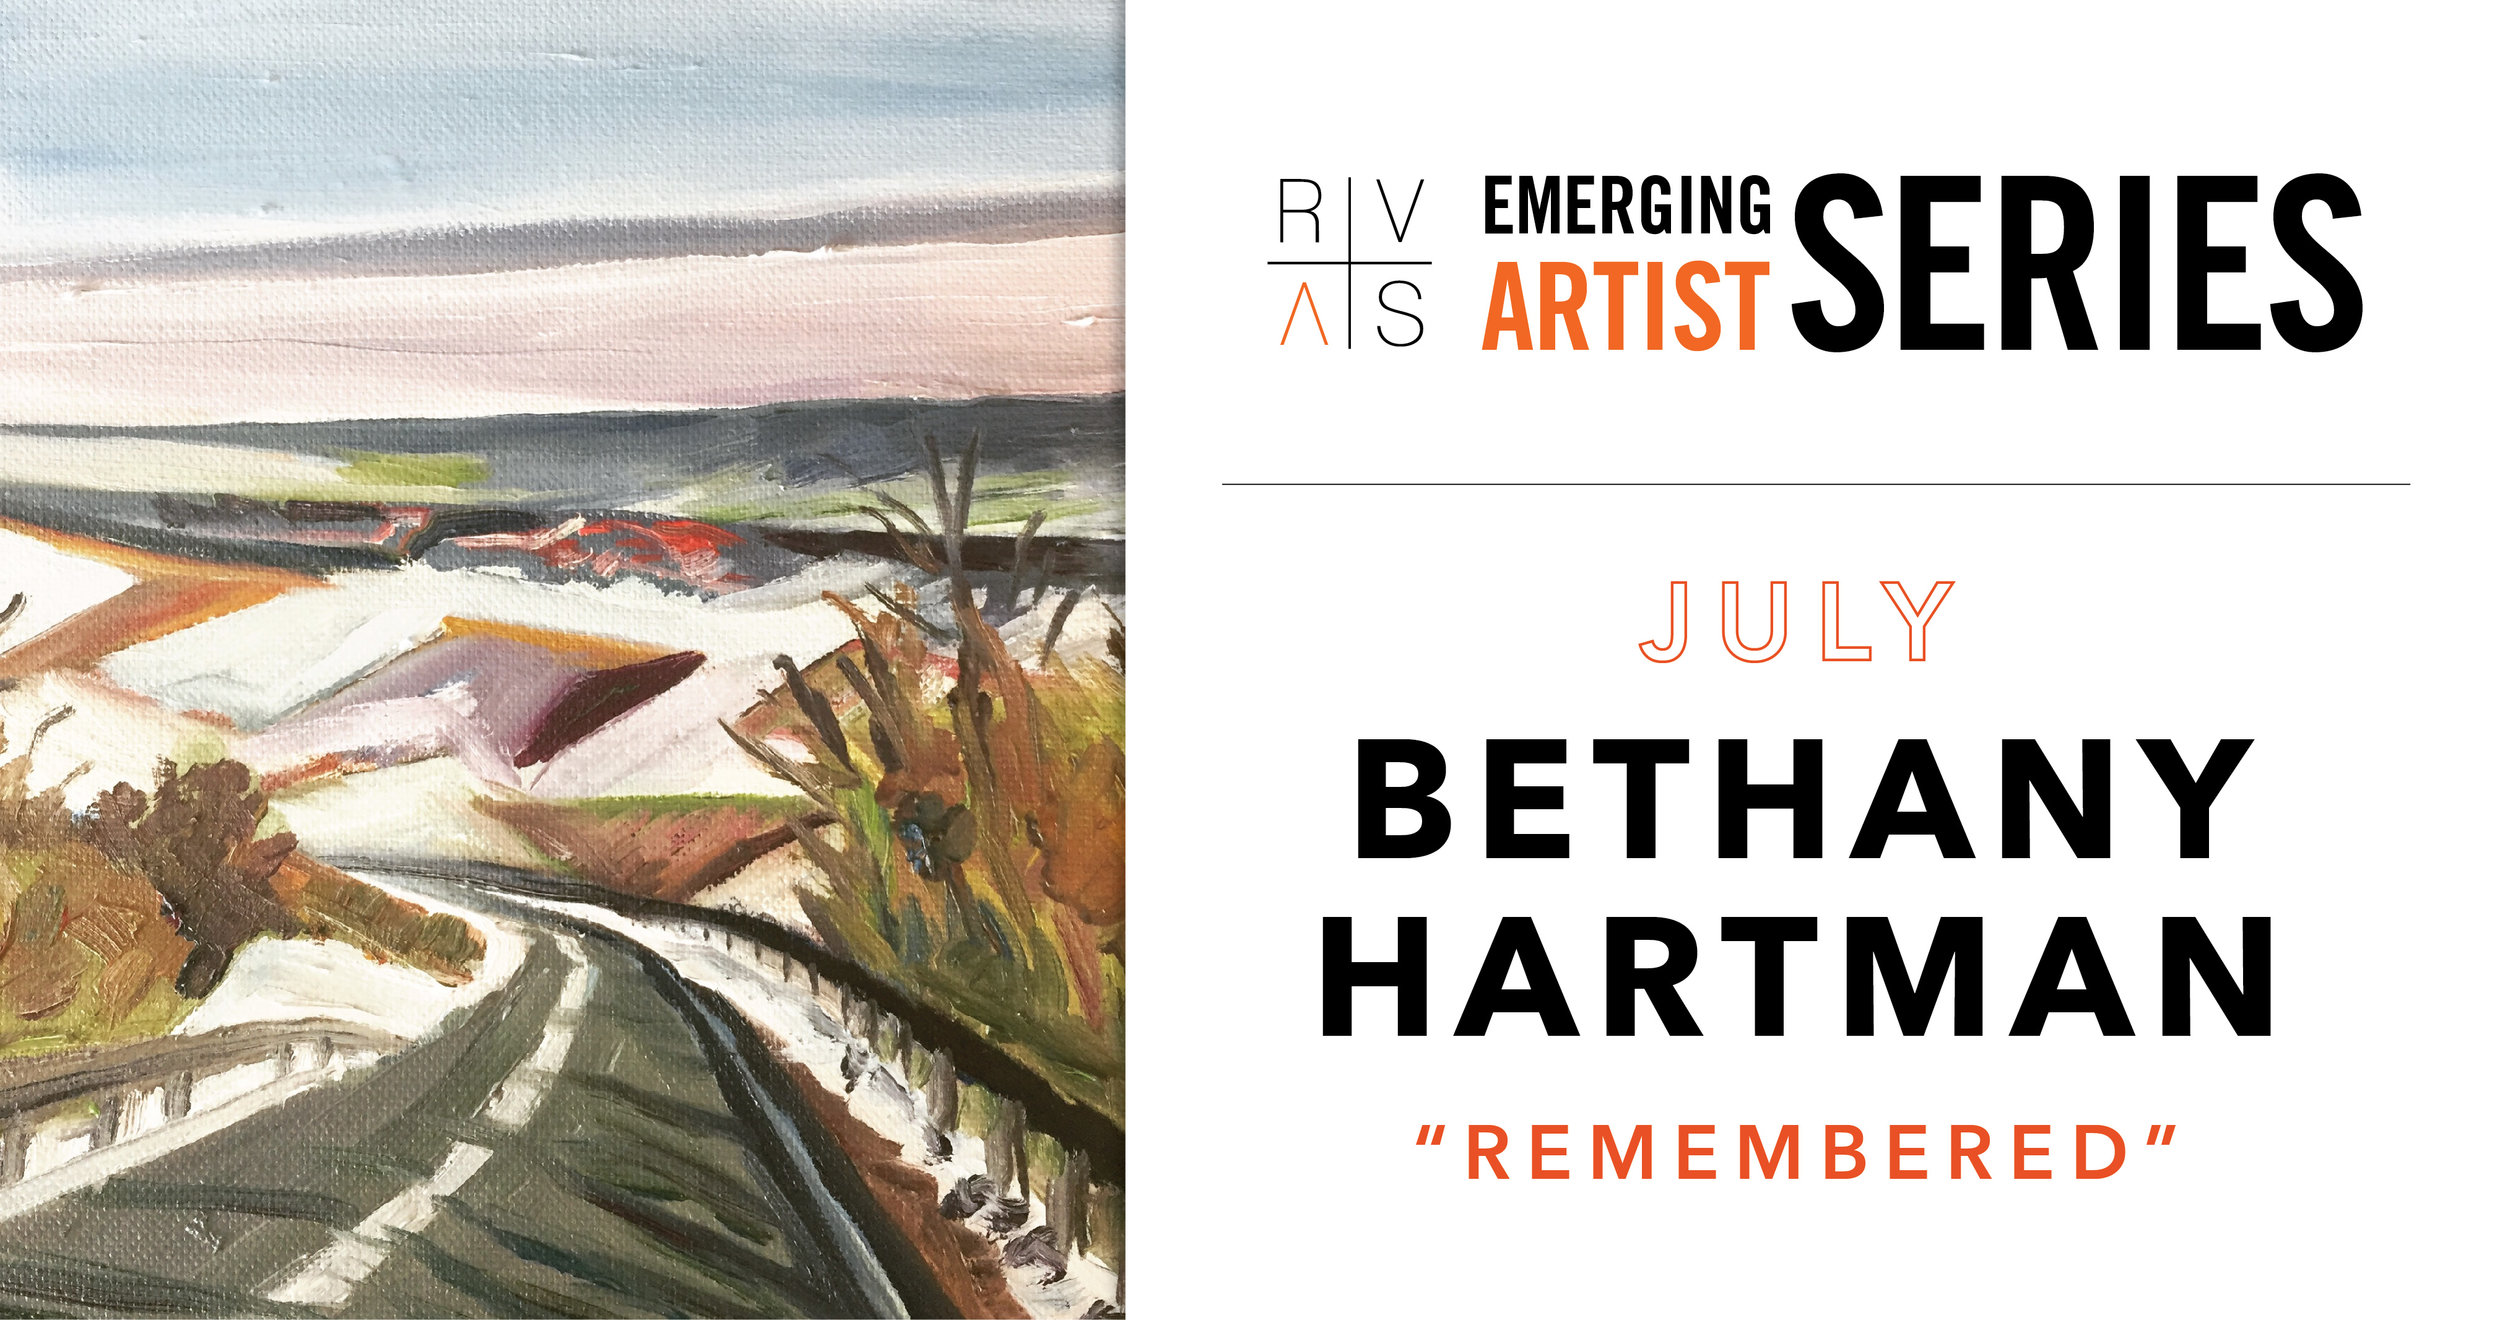 2019EmergingArtistsFB_JULY_BethanyHartman-01.jpg